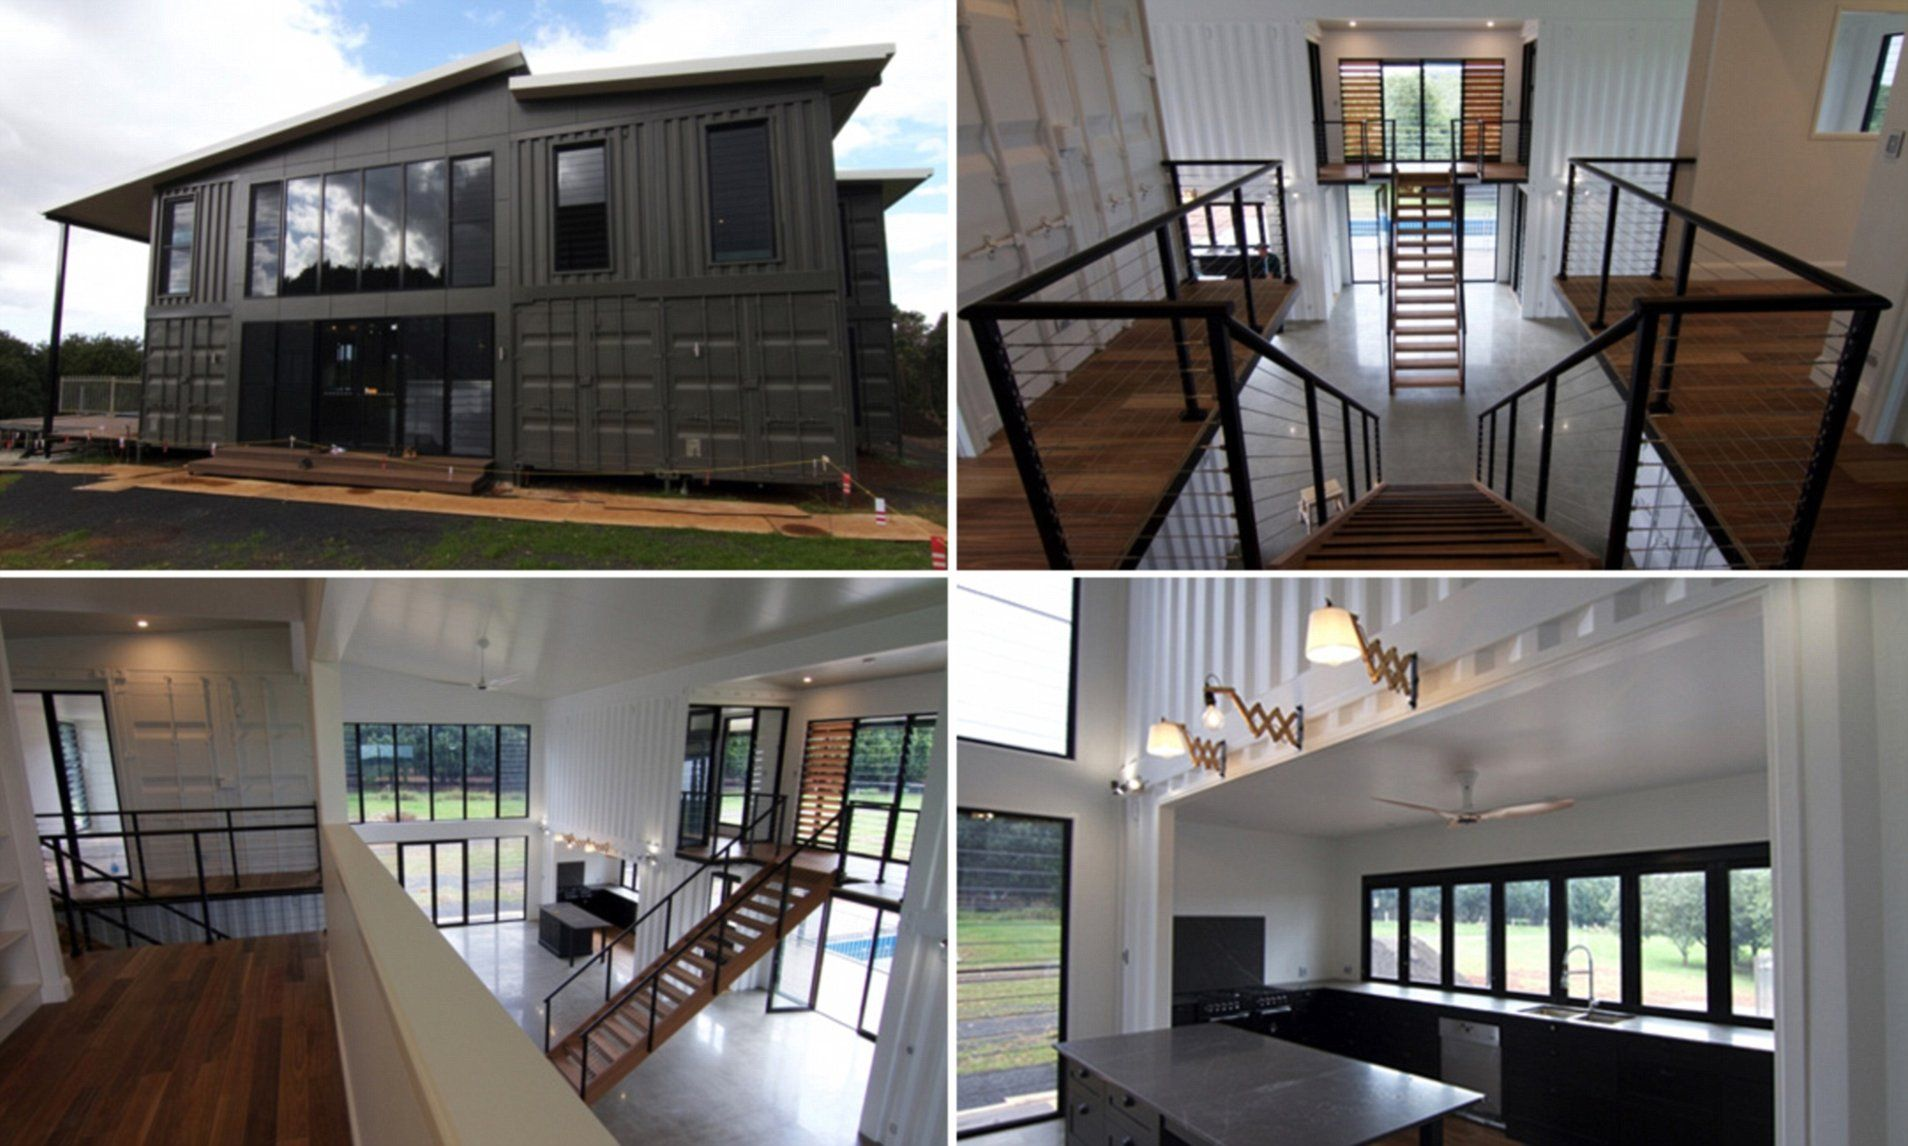 See the shipping container homes where you can live in